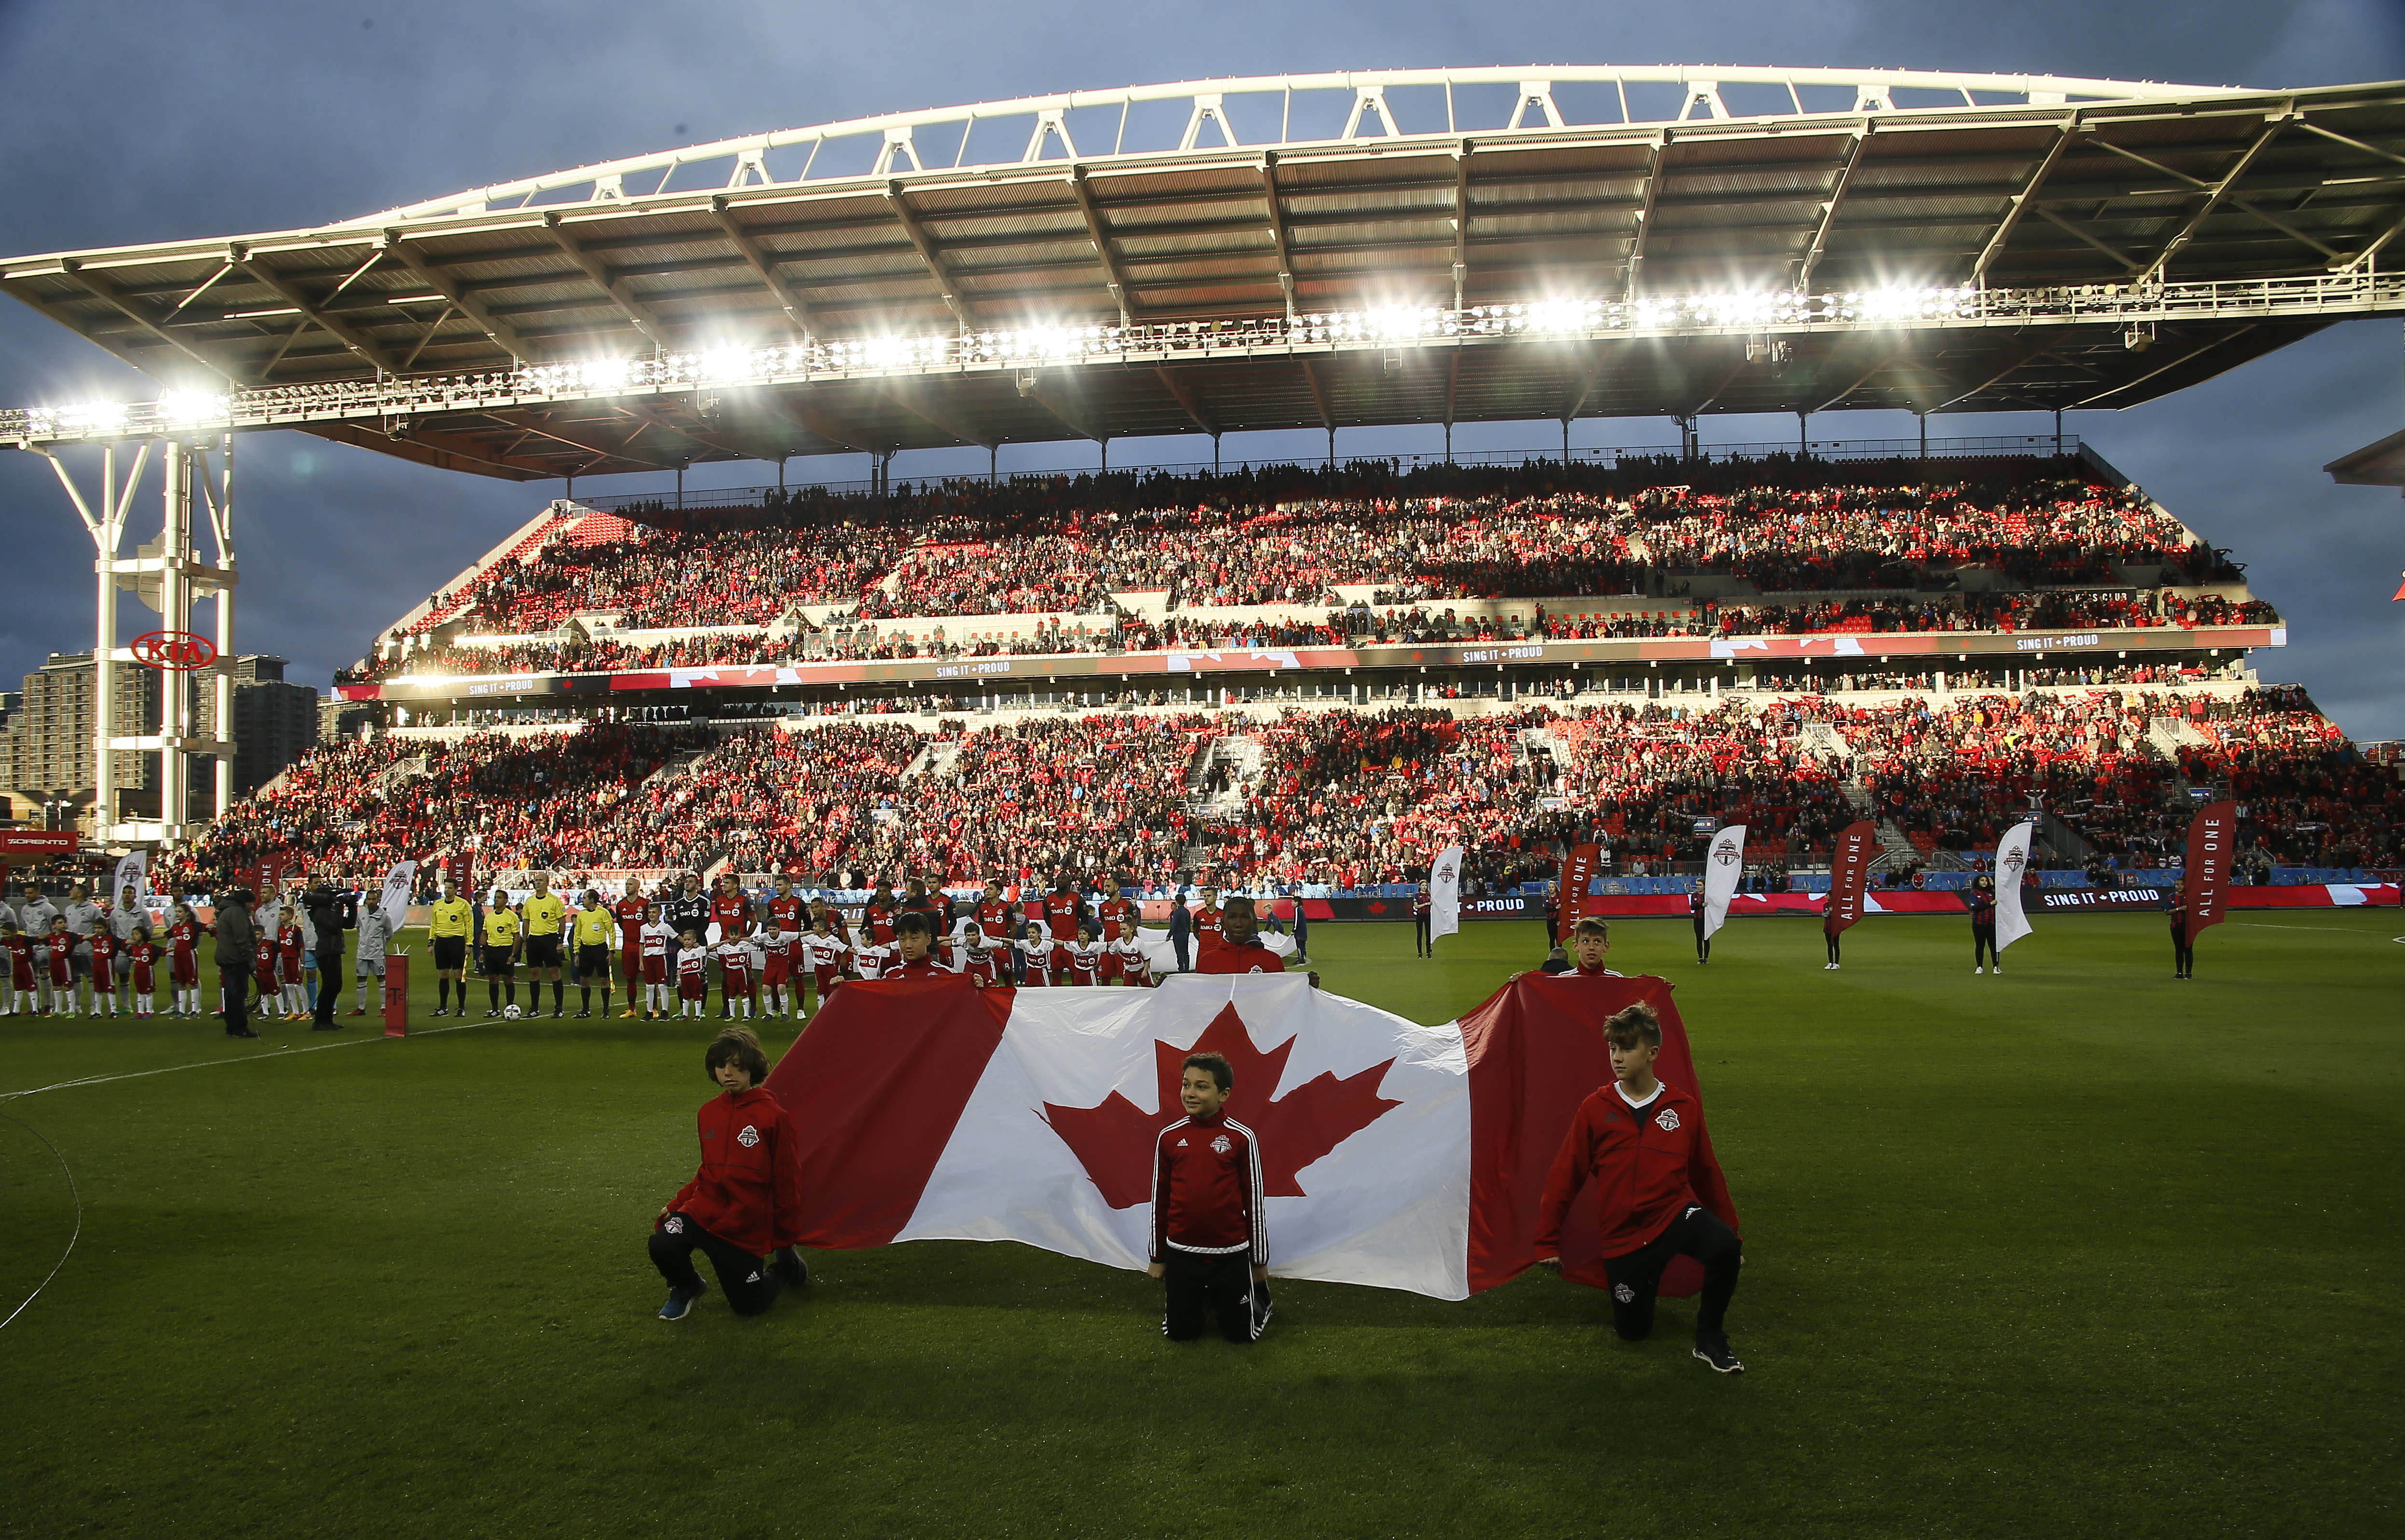 10024446-mls-chicago-fire-at-toronto-fc